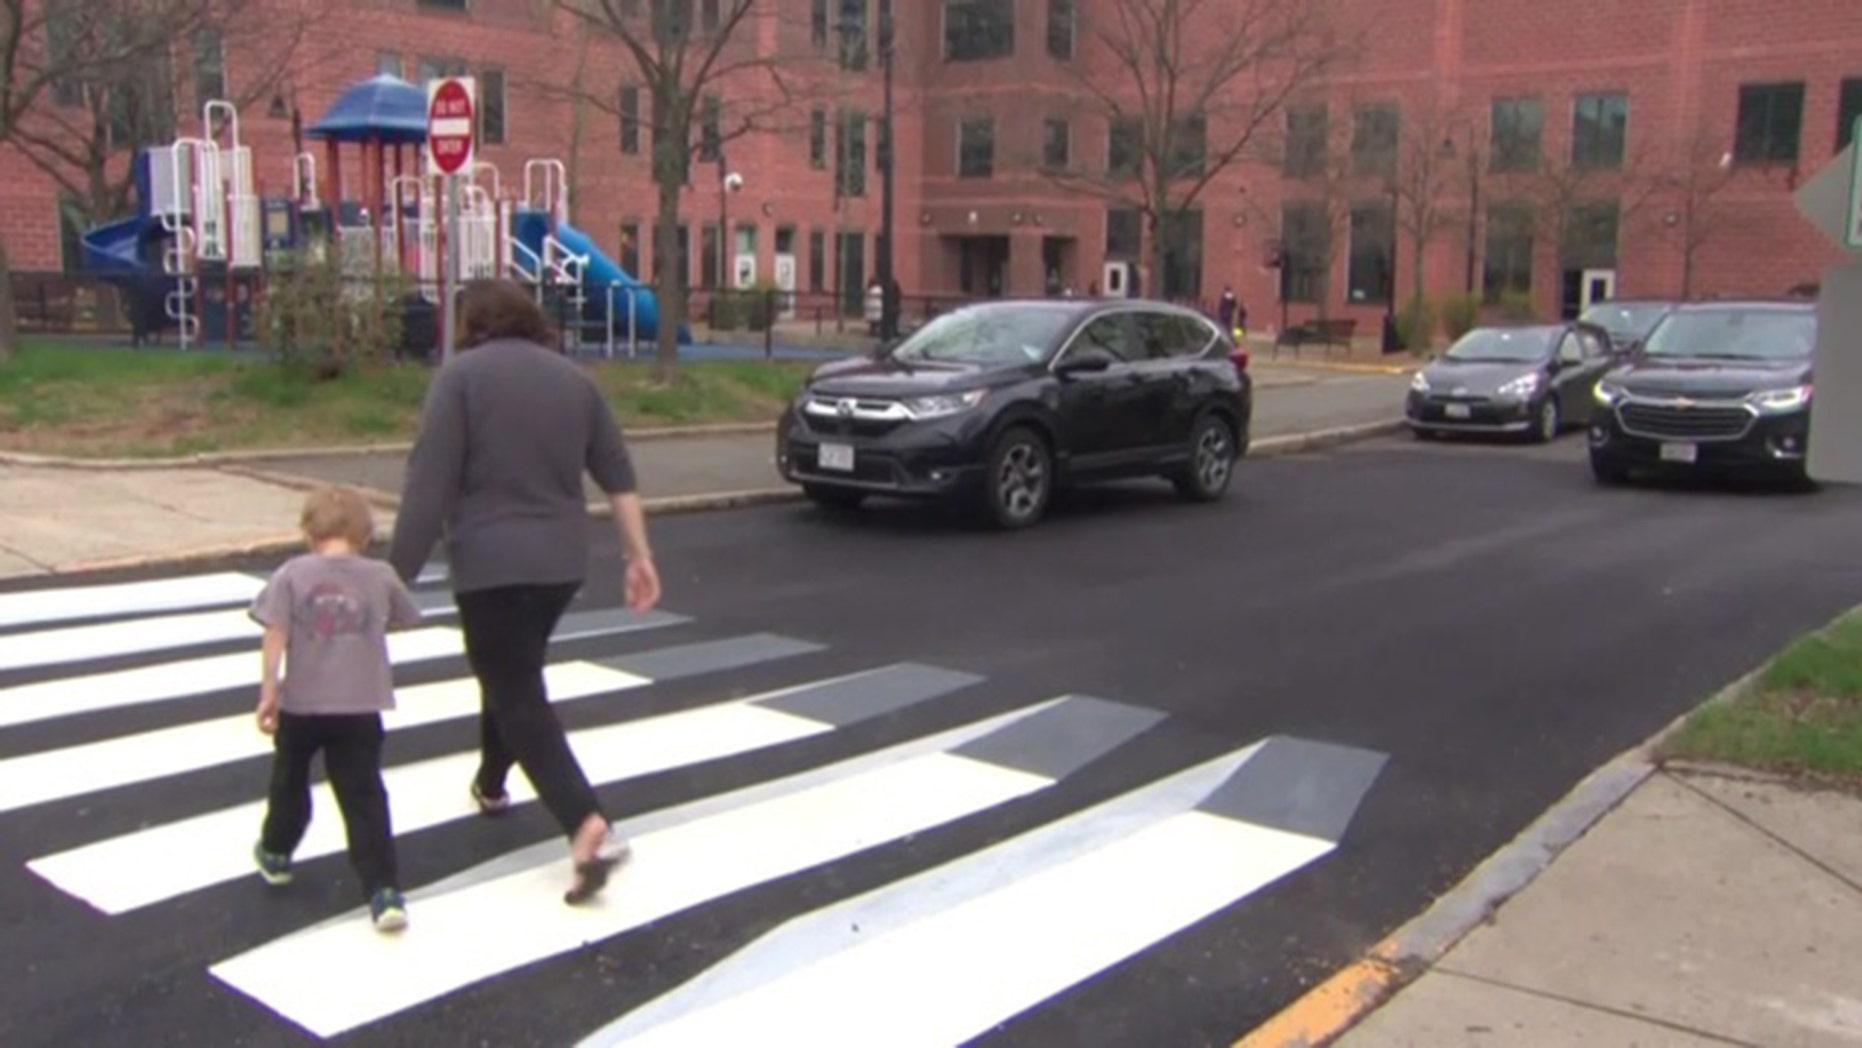 A pedestrian walks across the newly designed 3D crosswalk. The walkway was designed by a pair of fourth graders in Massachusetts.